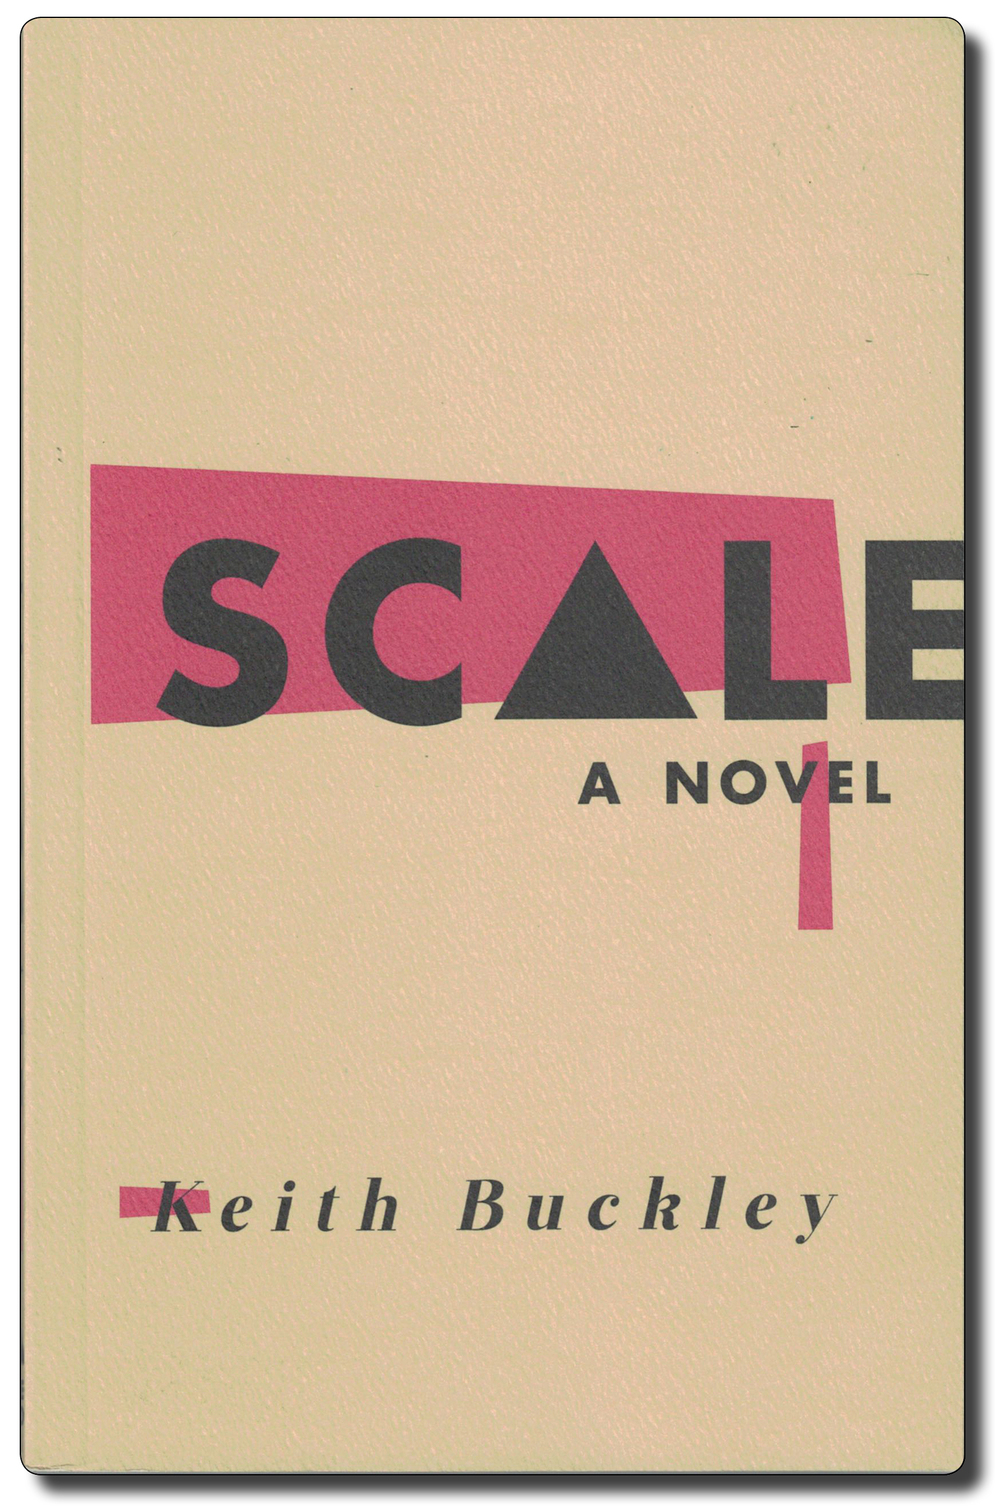 Scale Cover Front Cover with Shadow rgb.jpg